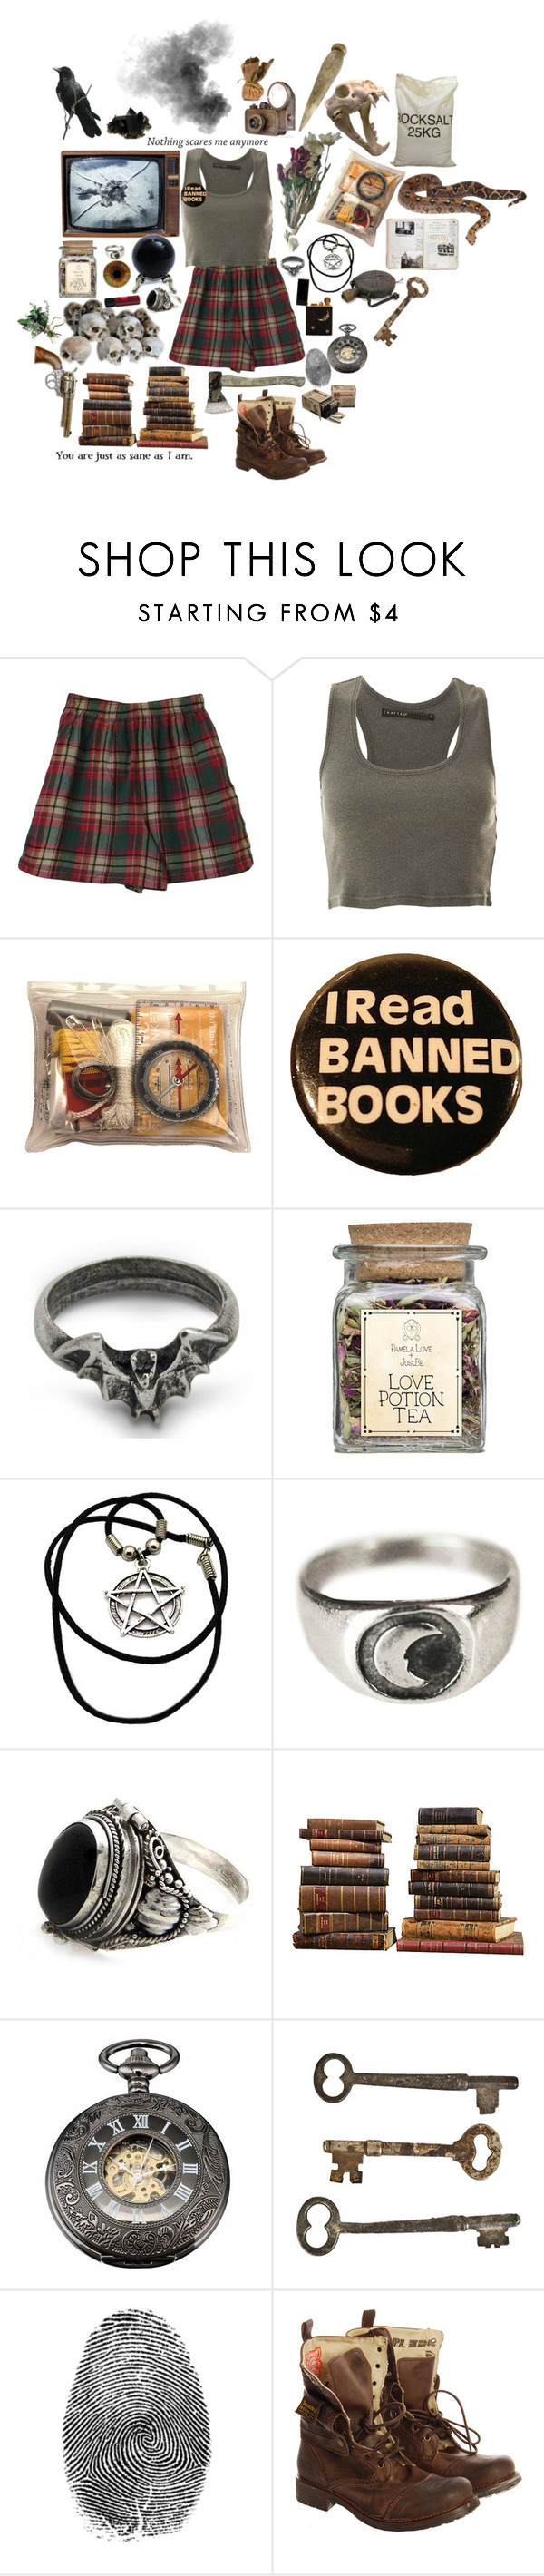 """Monster Hunter"" by causingpanicatthetheater ❤ liked on Polyvore featuring Crafted, Suzannah Wainhouse, NOVICA, Sarreid, Jayson Home, Luna, Superdry and Old West"